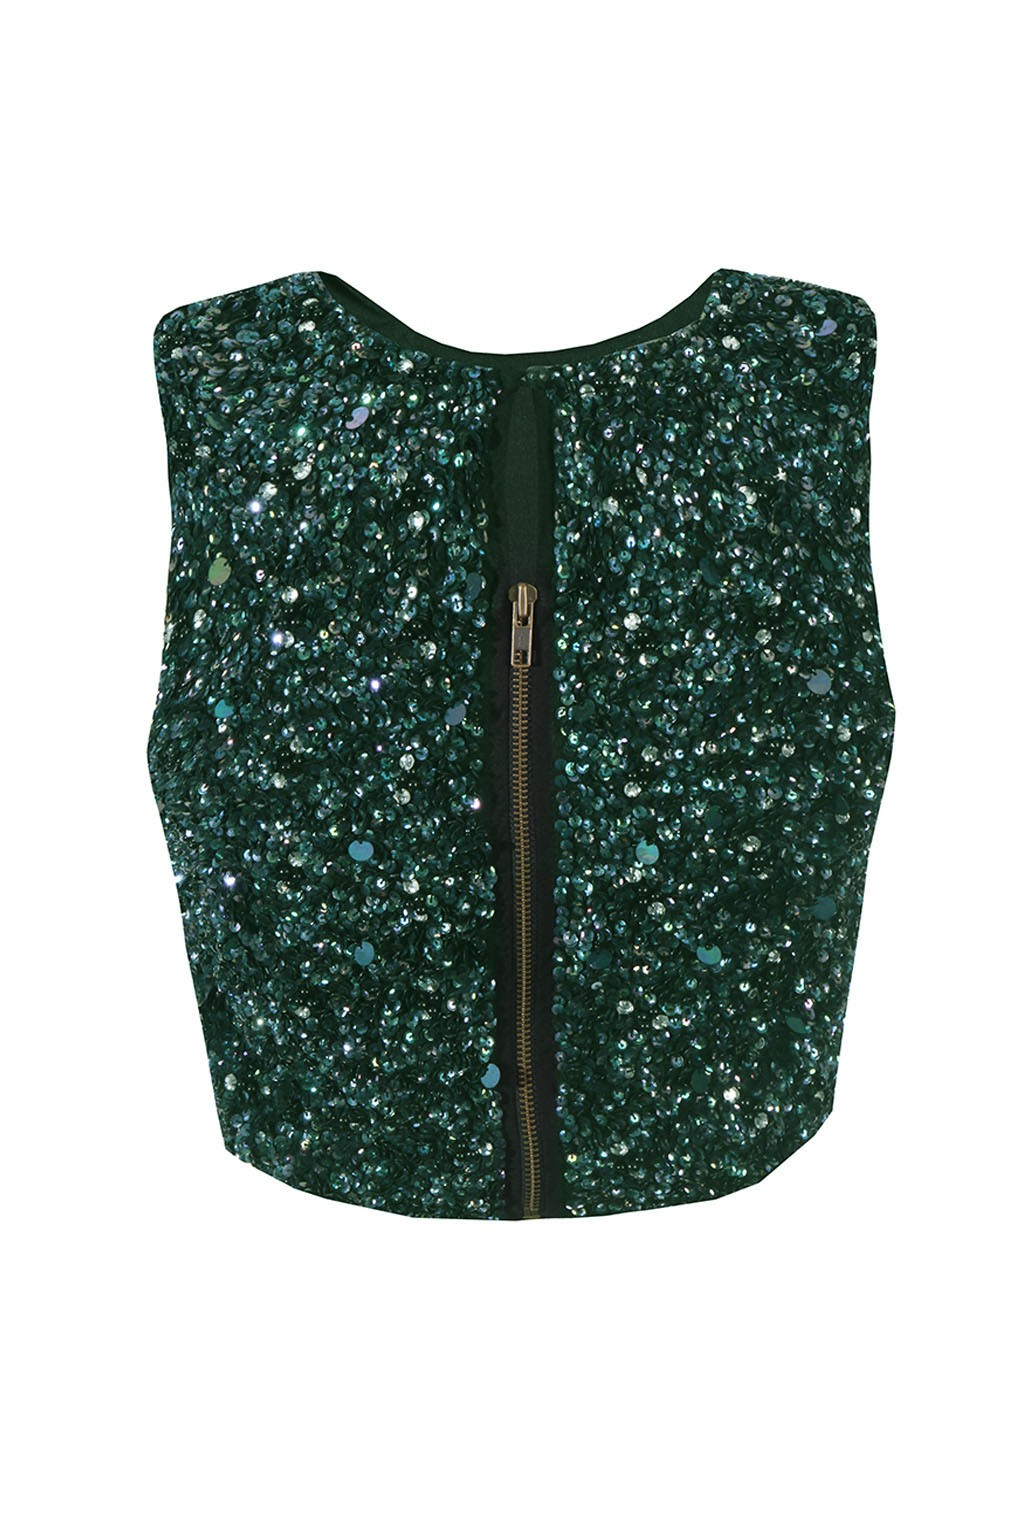 Lace Amp Beads Picasso Green Sequin Top Lace Amp Beads Tops